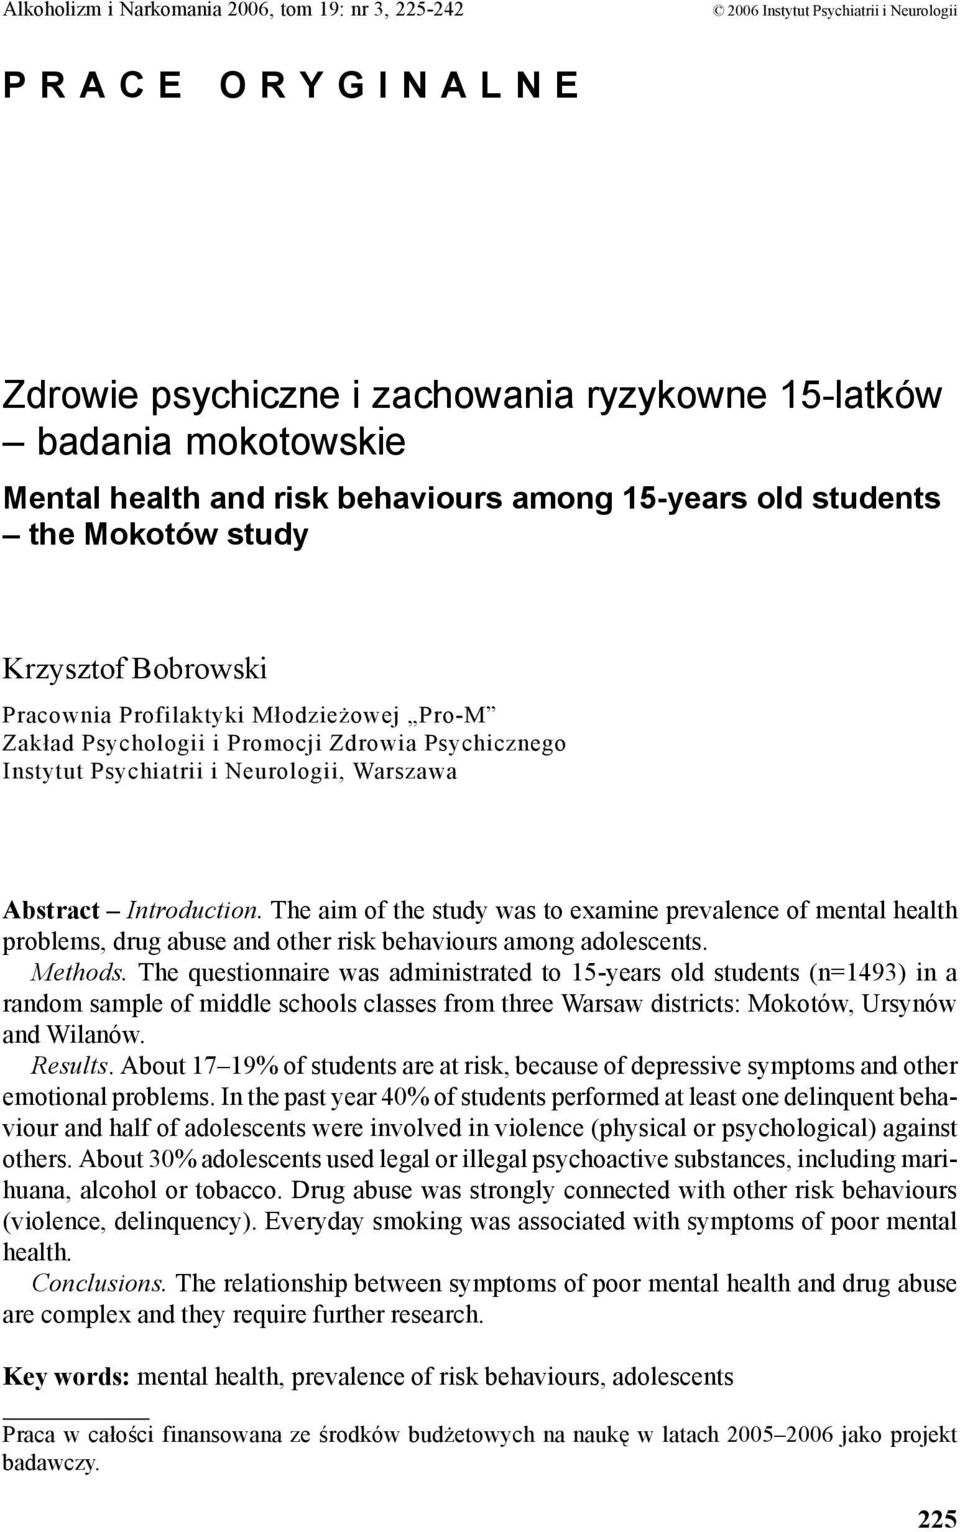 Psychiatrii i Neurologii, Warszawa Abstract Introduction. The aim of the study was to examine prevalence of mental health problems, drug abuse and other risk behaviours among adolescents. Methods.